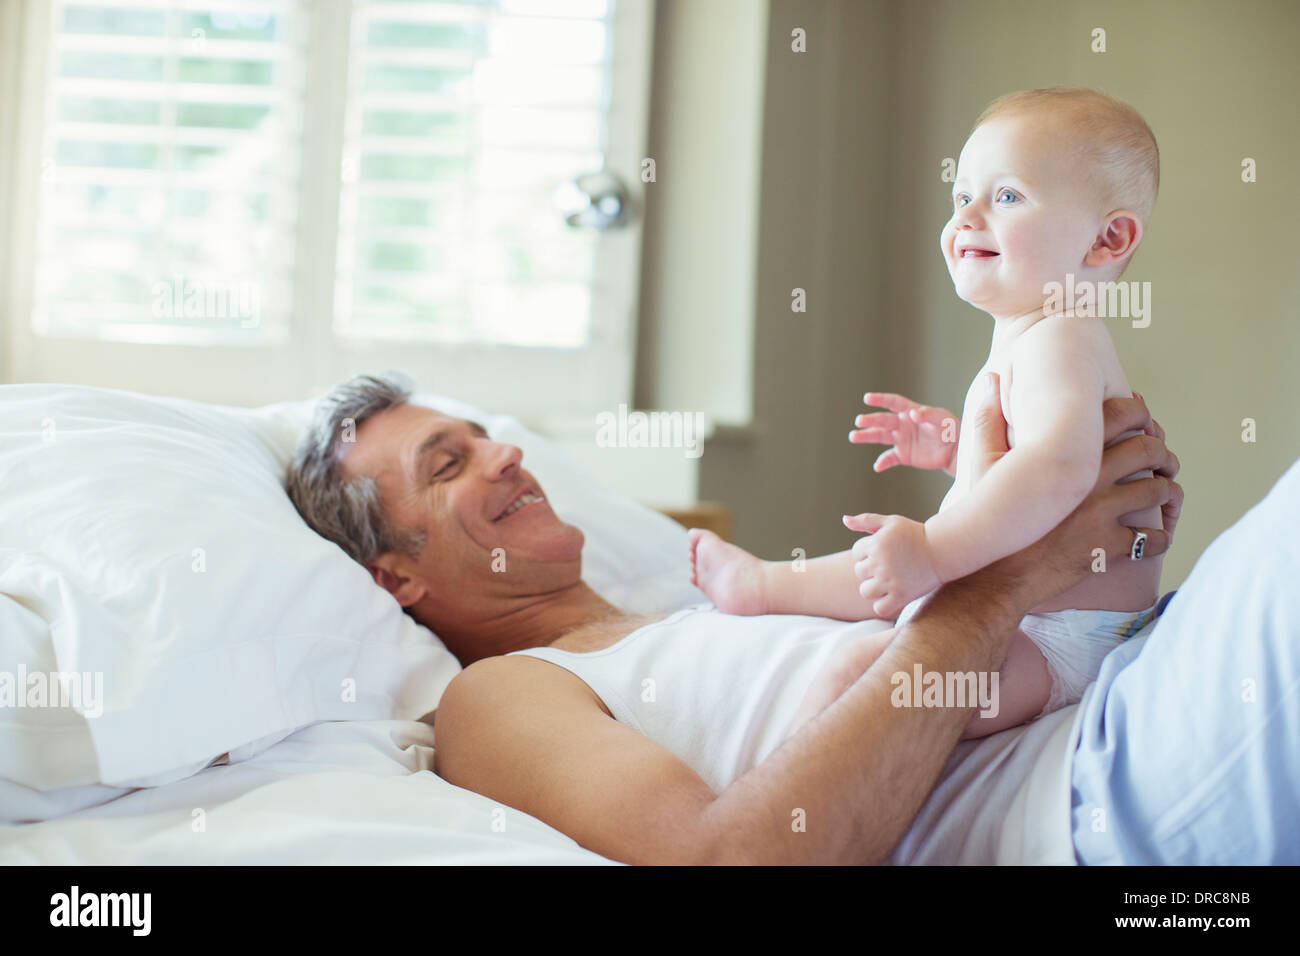 Father playing with baby on bed - Stock Image